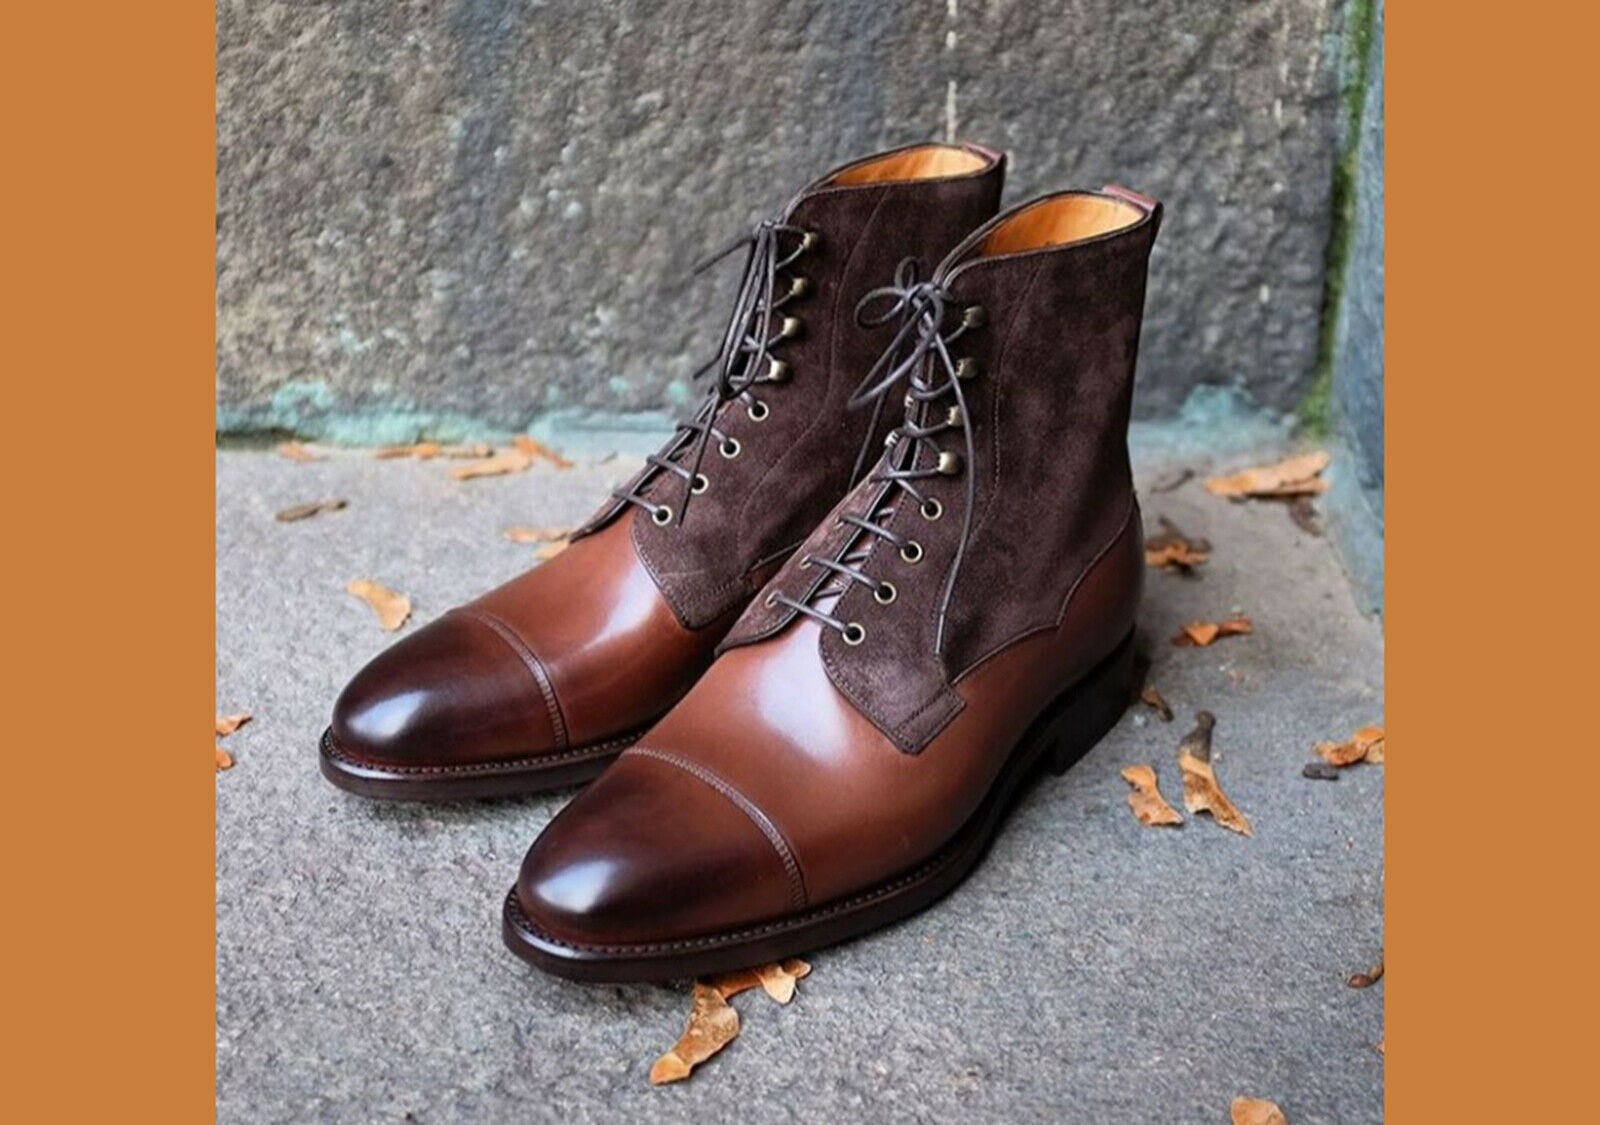 Oxford Lace Up Brown Tone Premium Suede Leather Cap Toe High Ankle Men Boots image 2